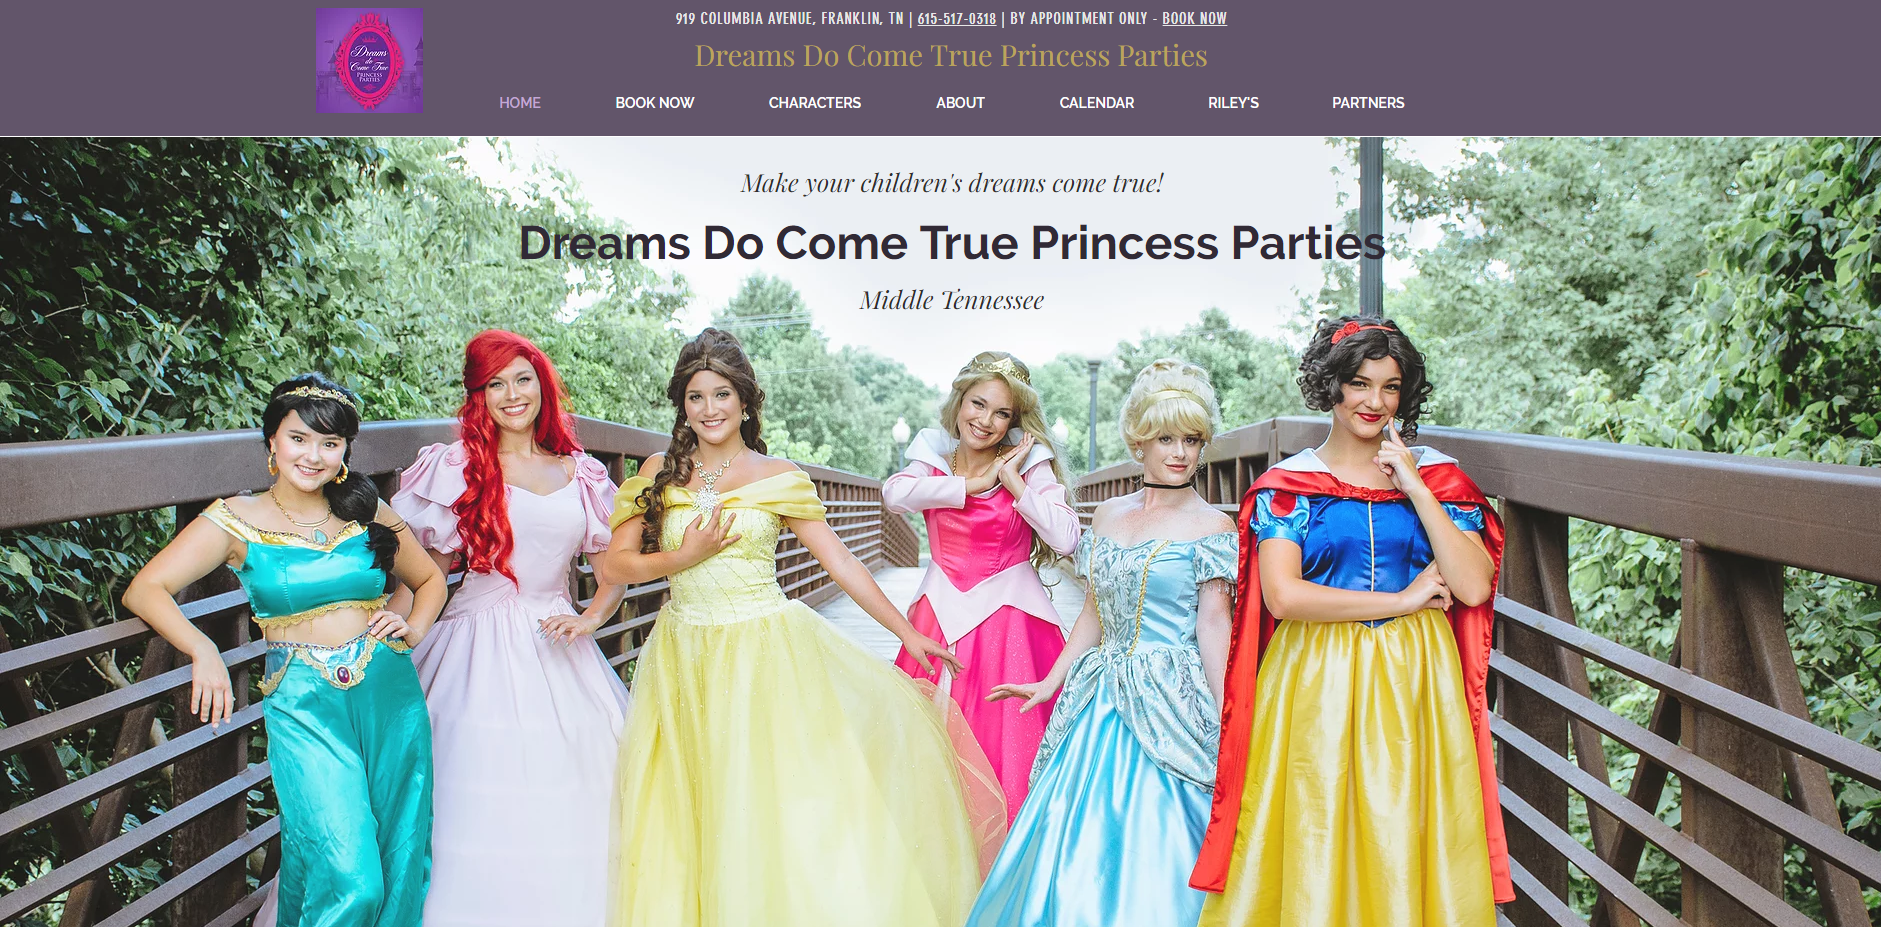 Dreams Do Come True Princess Parties